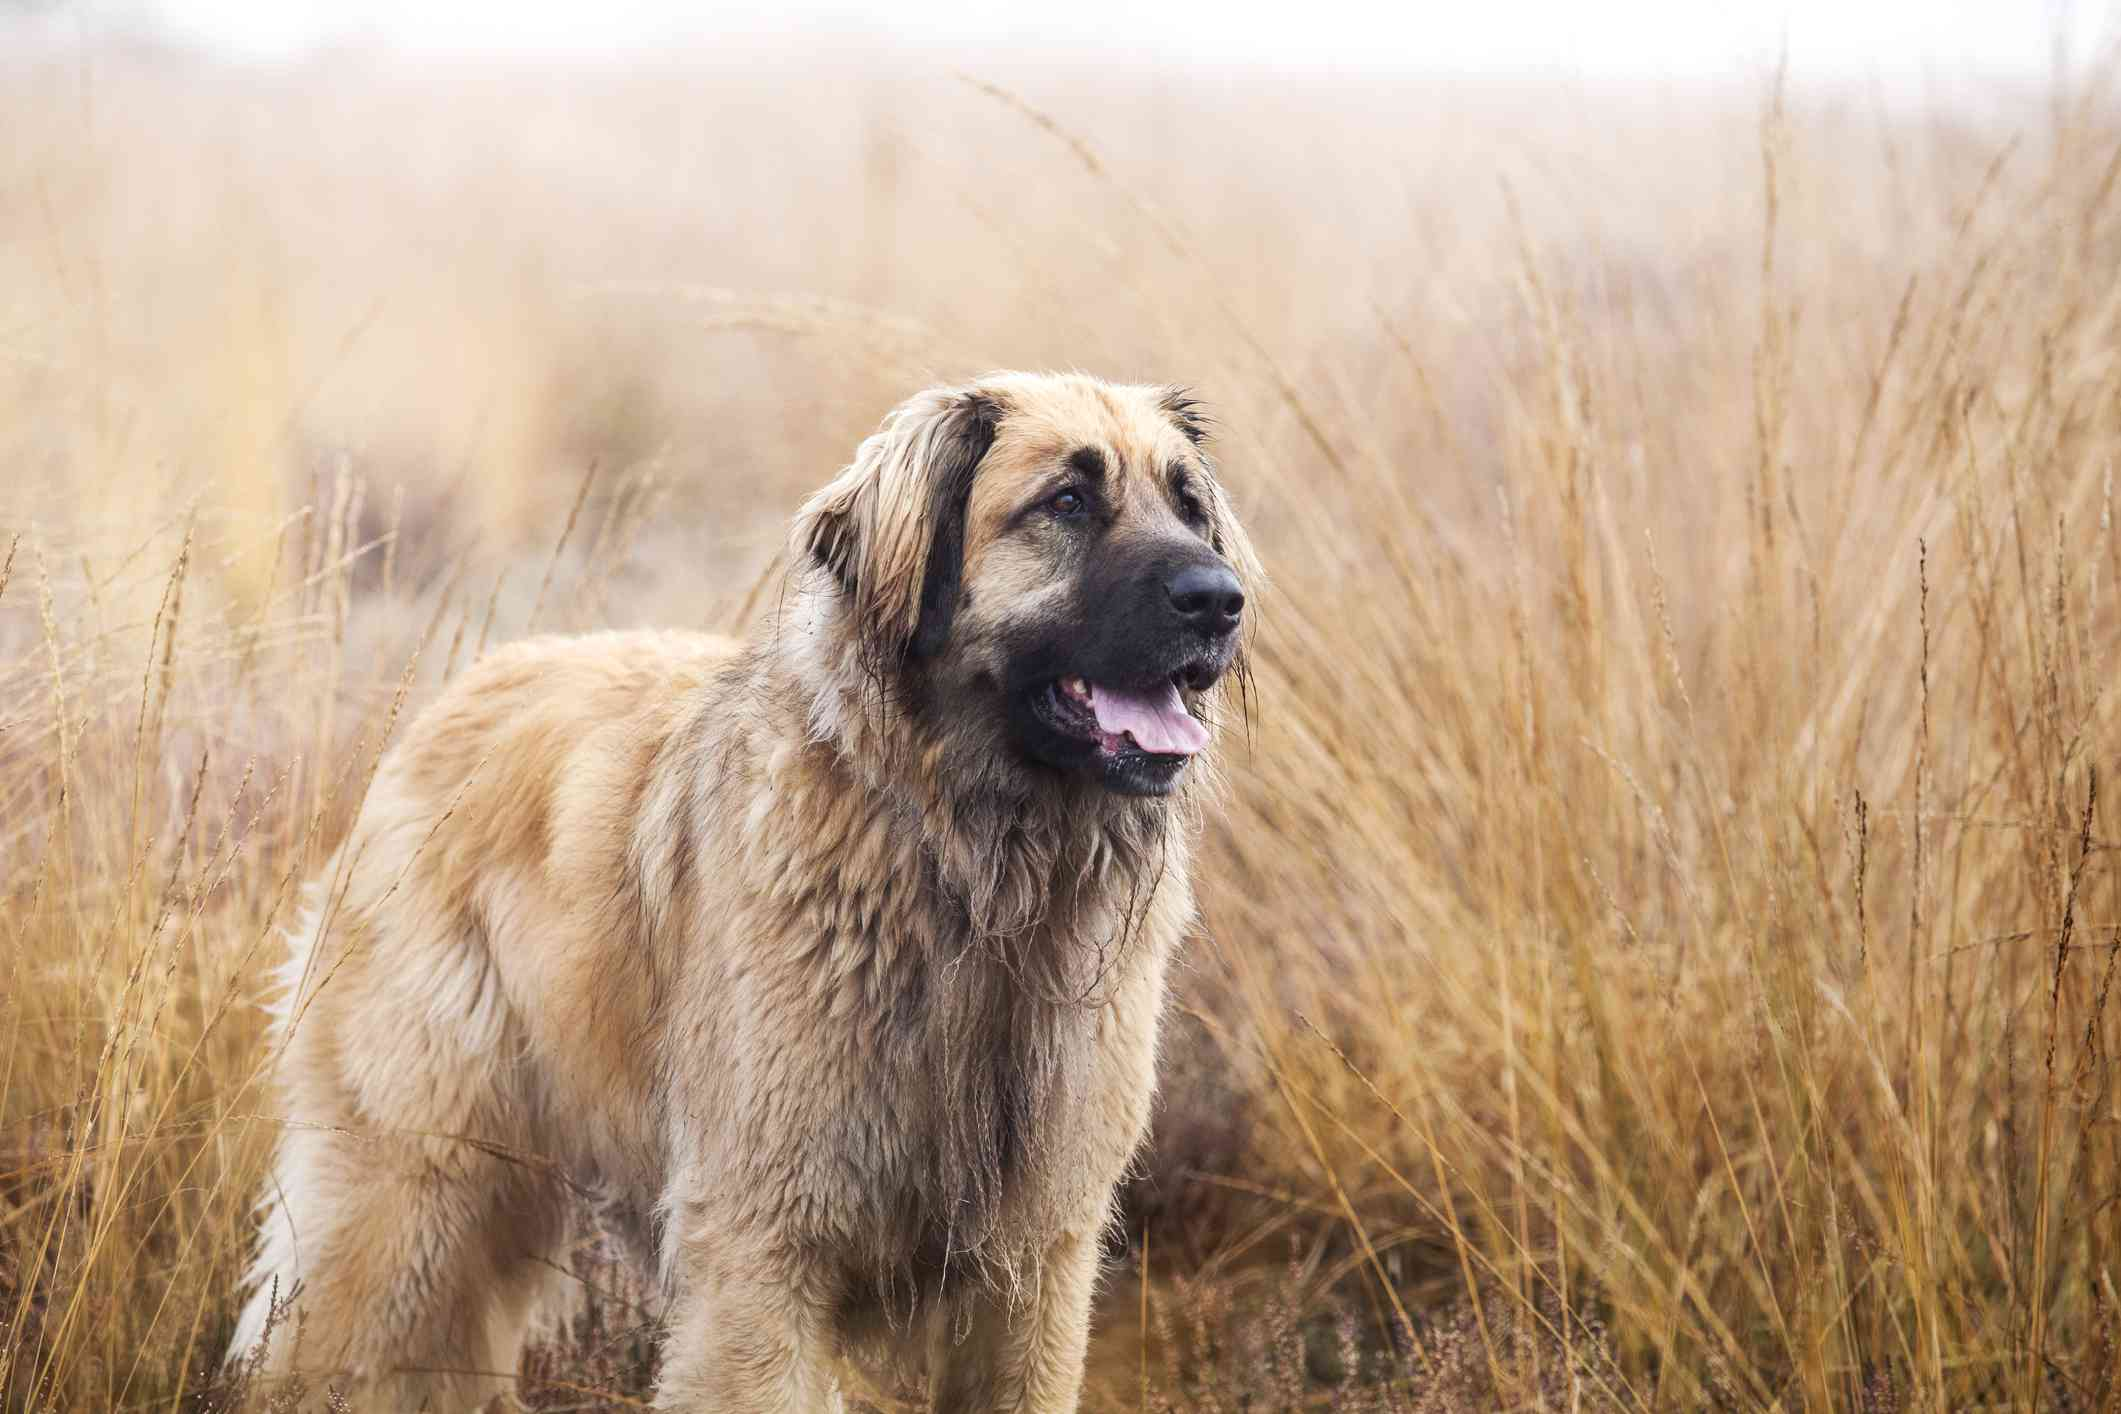 Leonberger in a field of tall grass